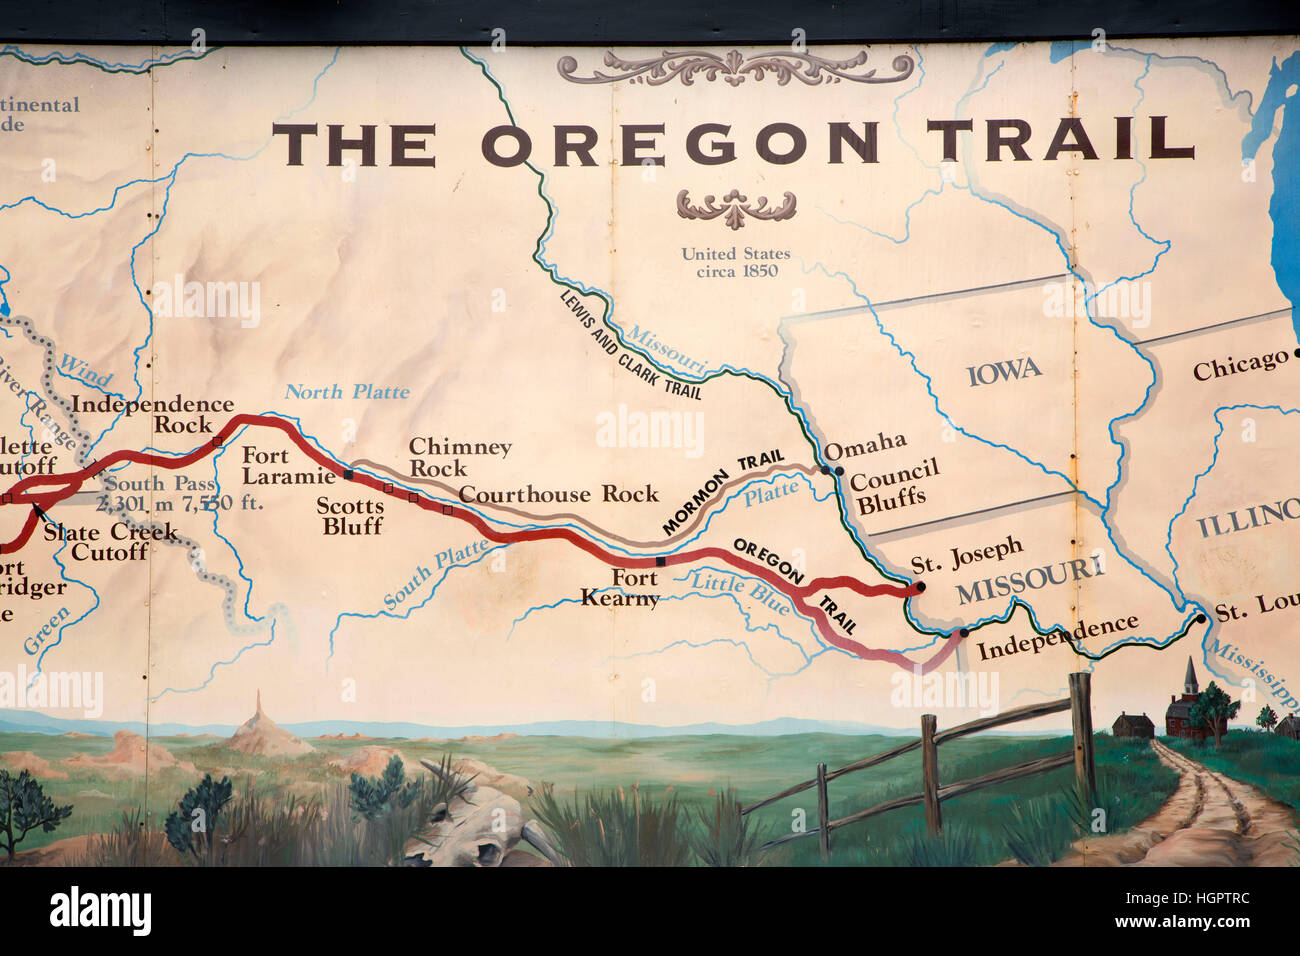 Oregon Trail Map Stock Photos & Oregon Trail Map Stock Images - Alamy